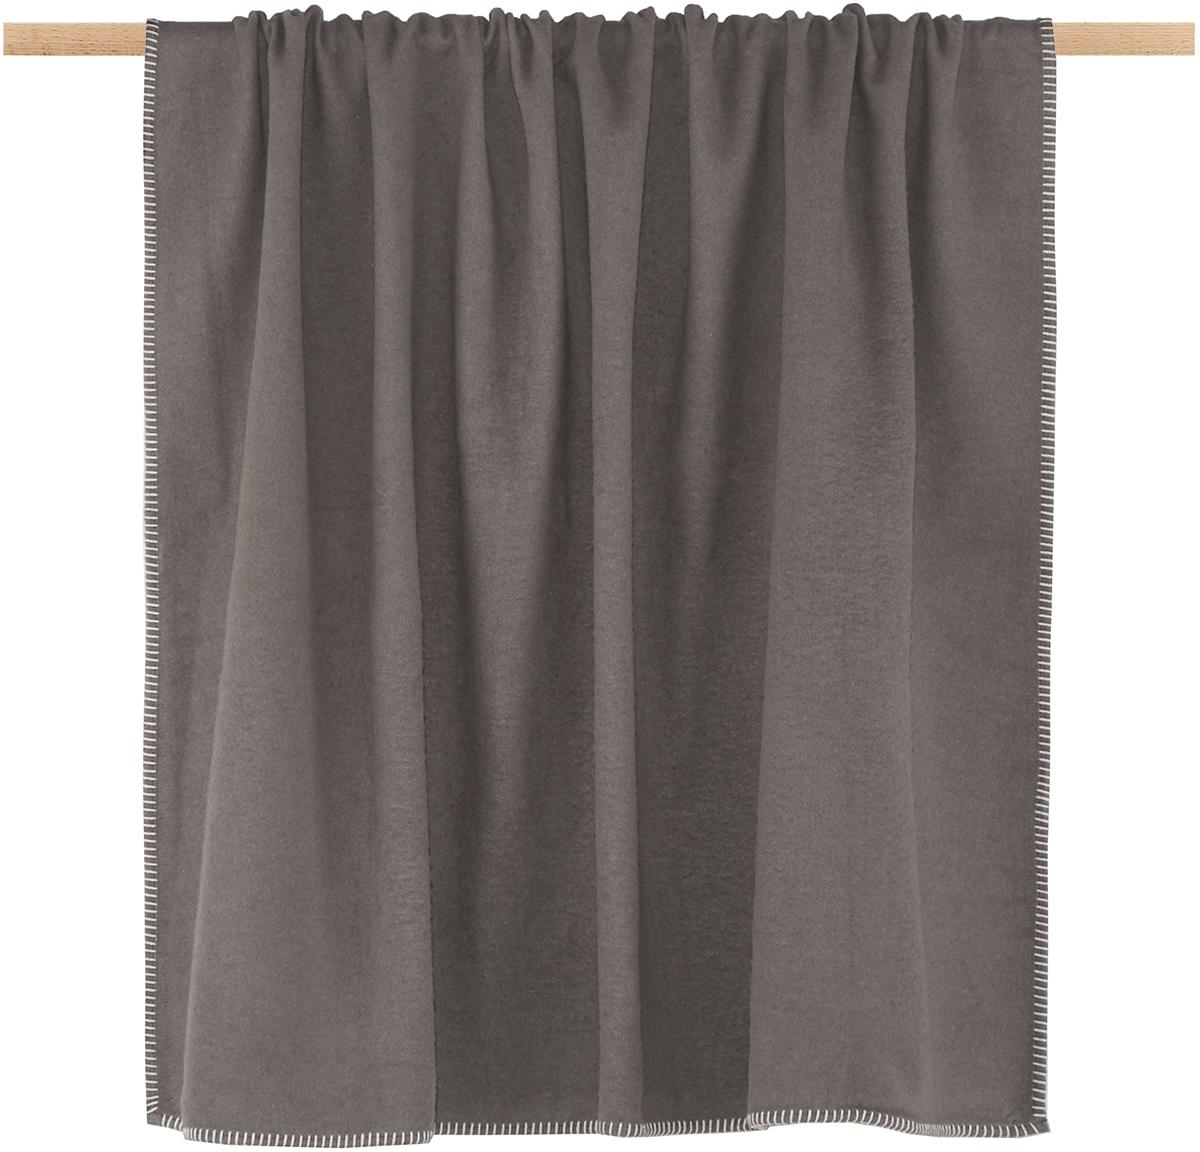 Plaid in pile Sylt in taupe con cucitura, Tessuto: jacquard, Taupe, Larg. 140 x Lung. 200 cm